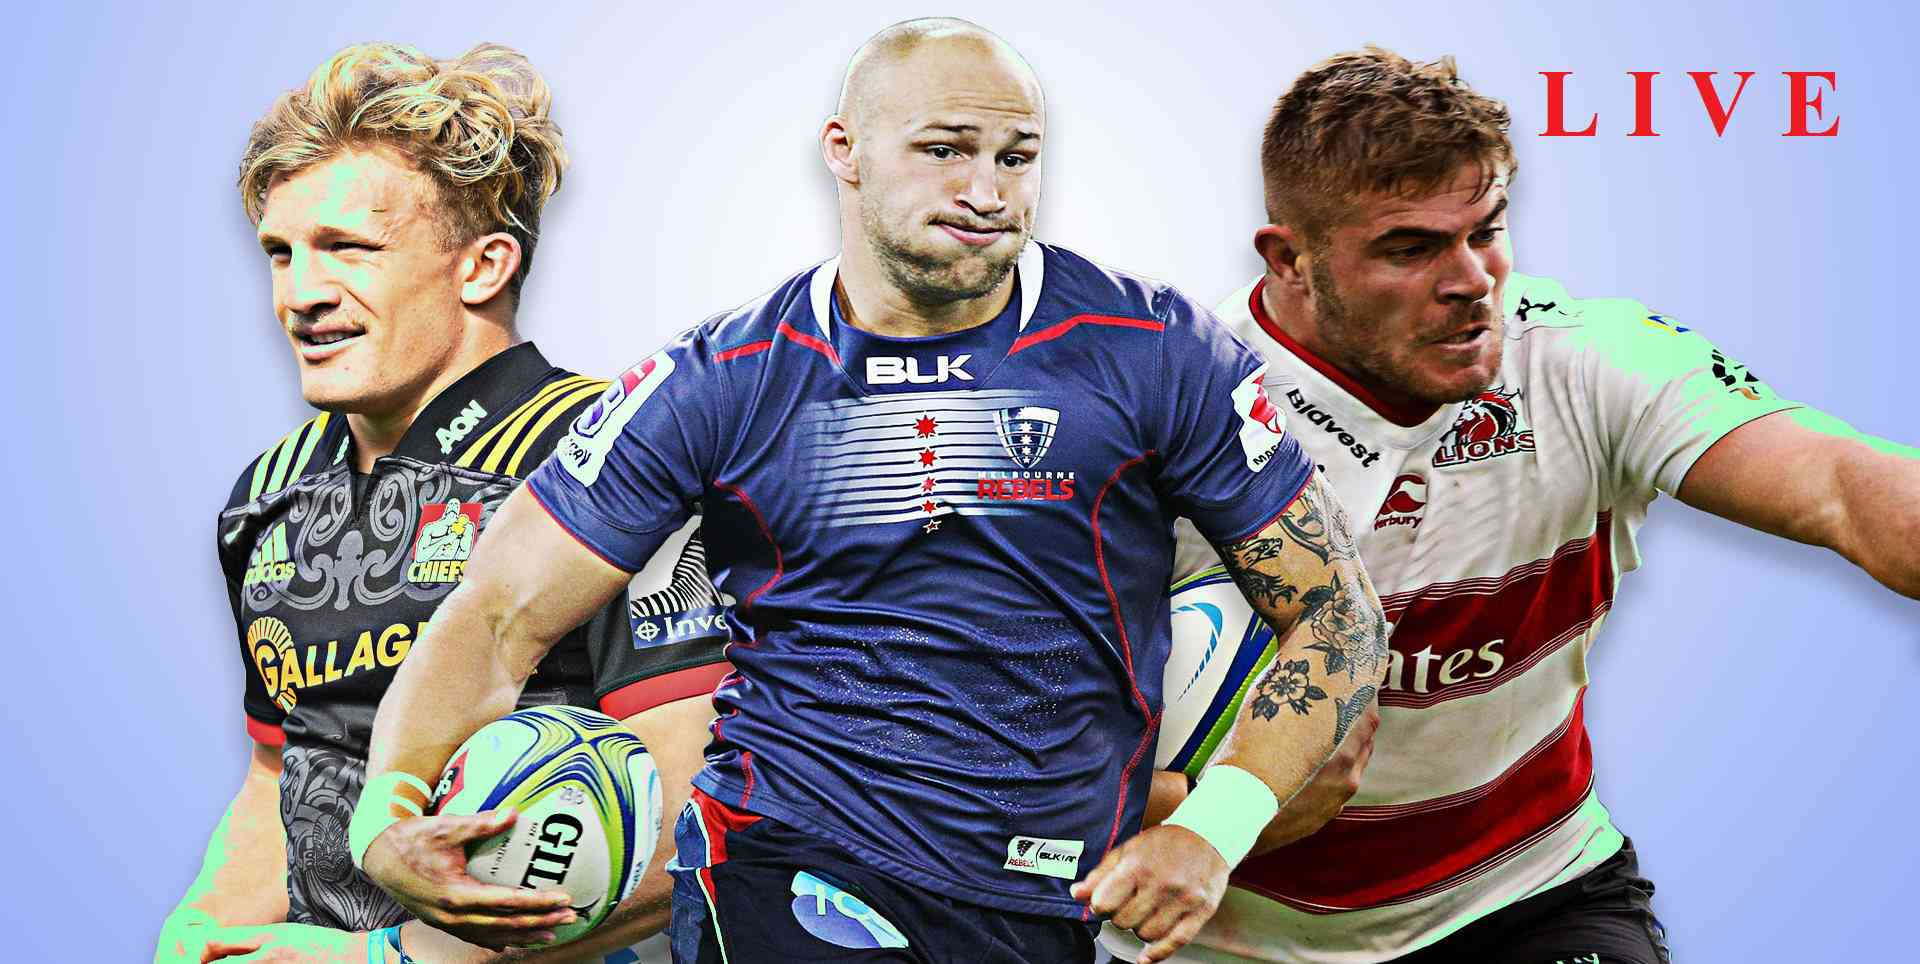 live-blues-vs-chiefs-rugby-stream